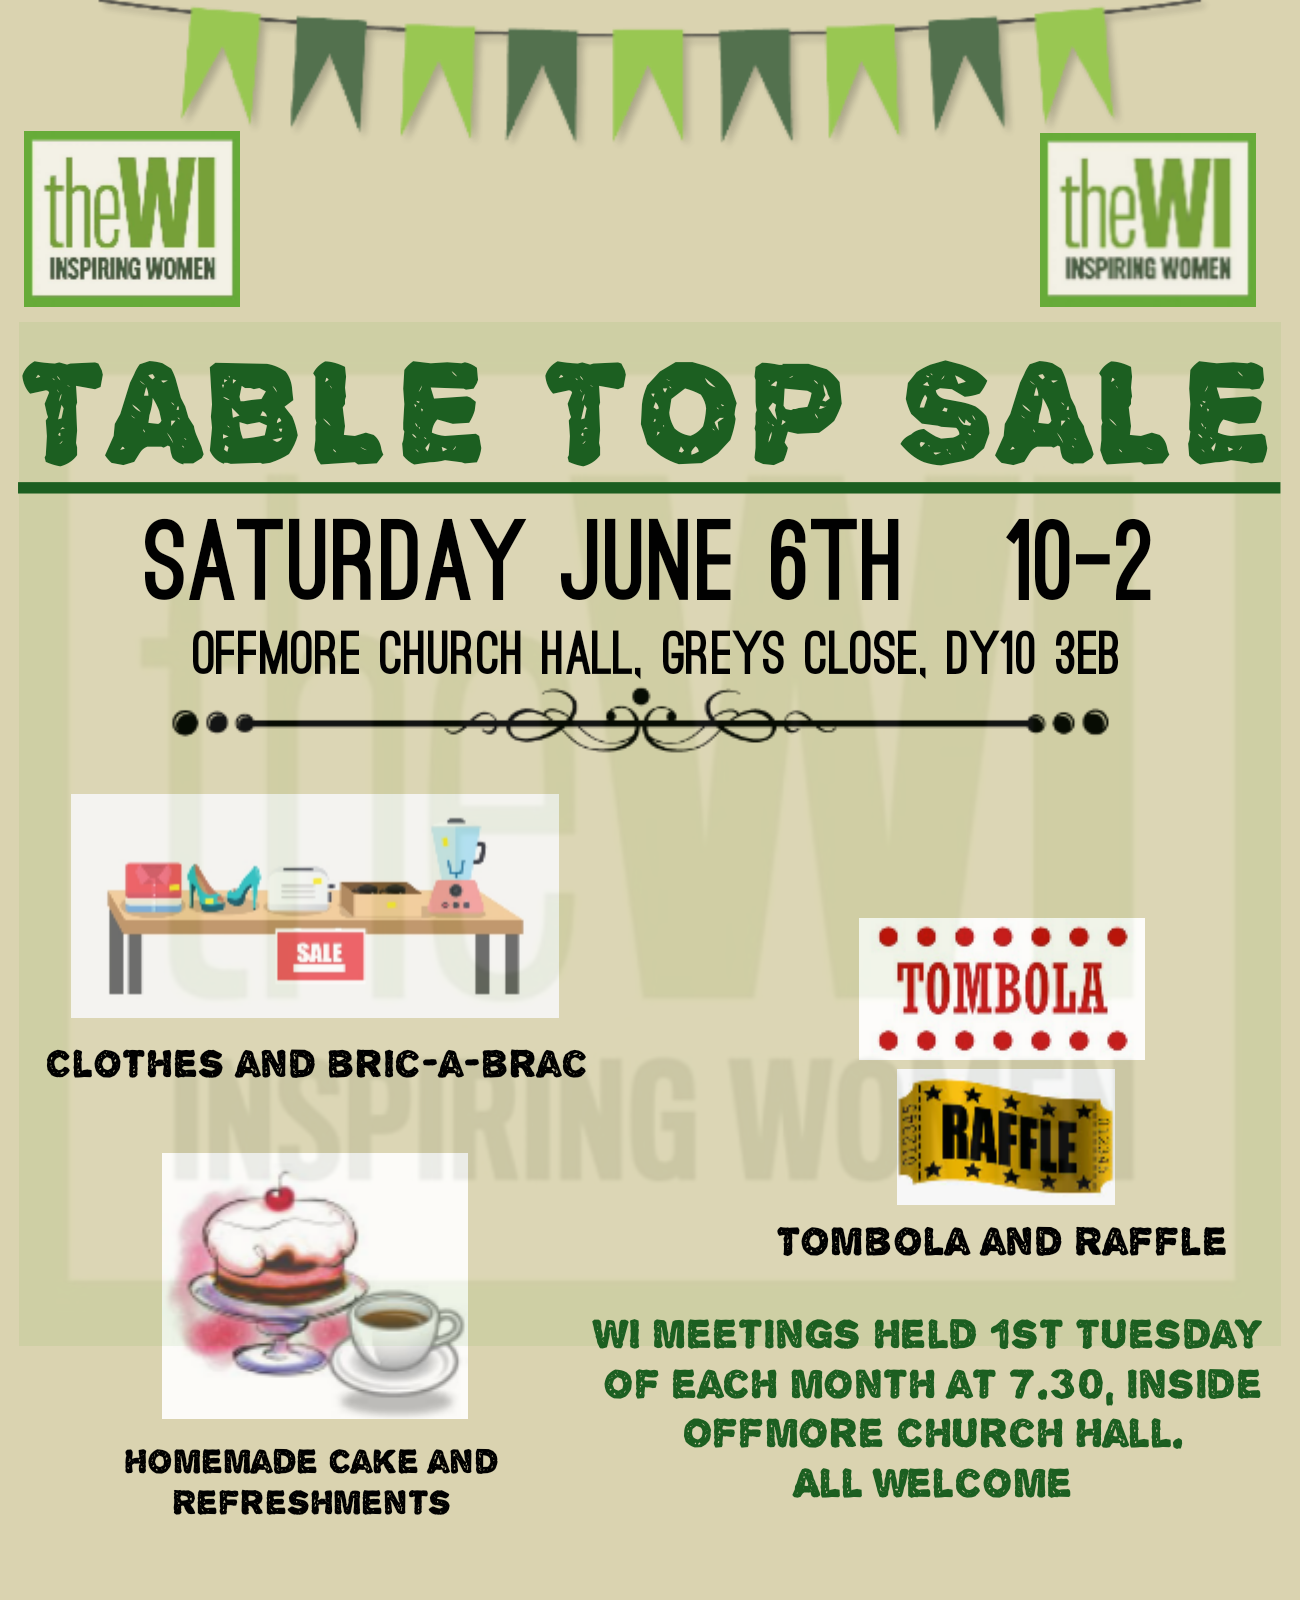 Table Top Sale - Offmore Church Hall